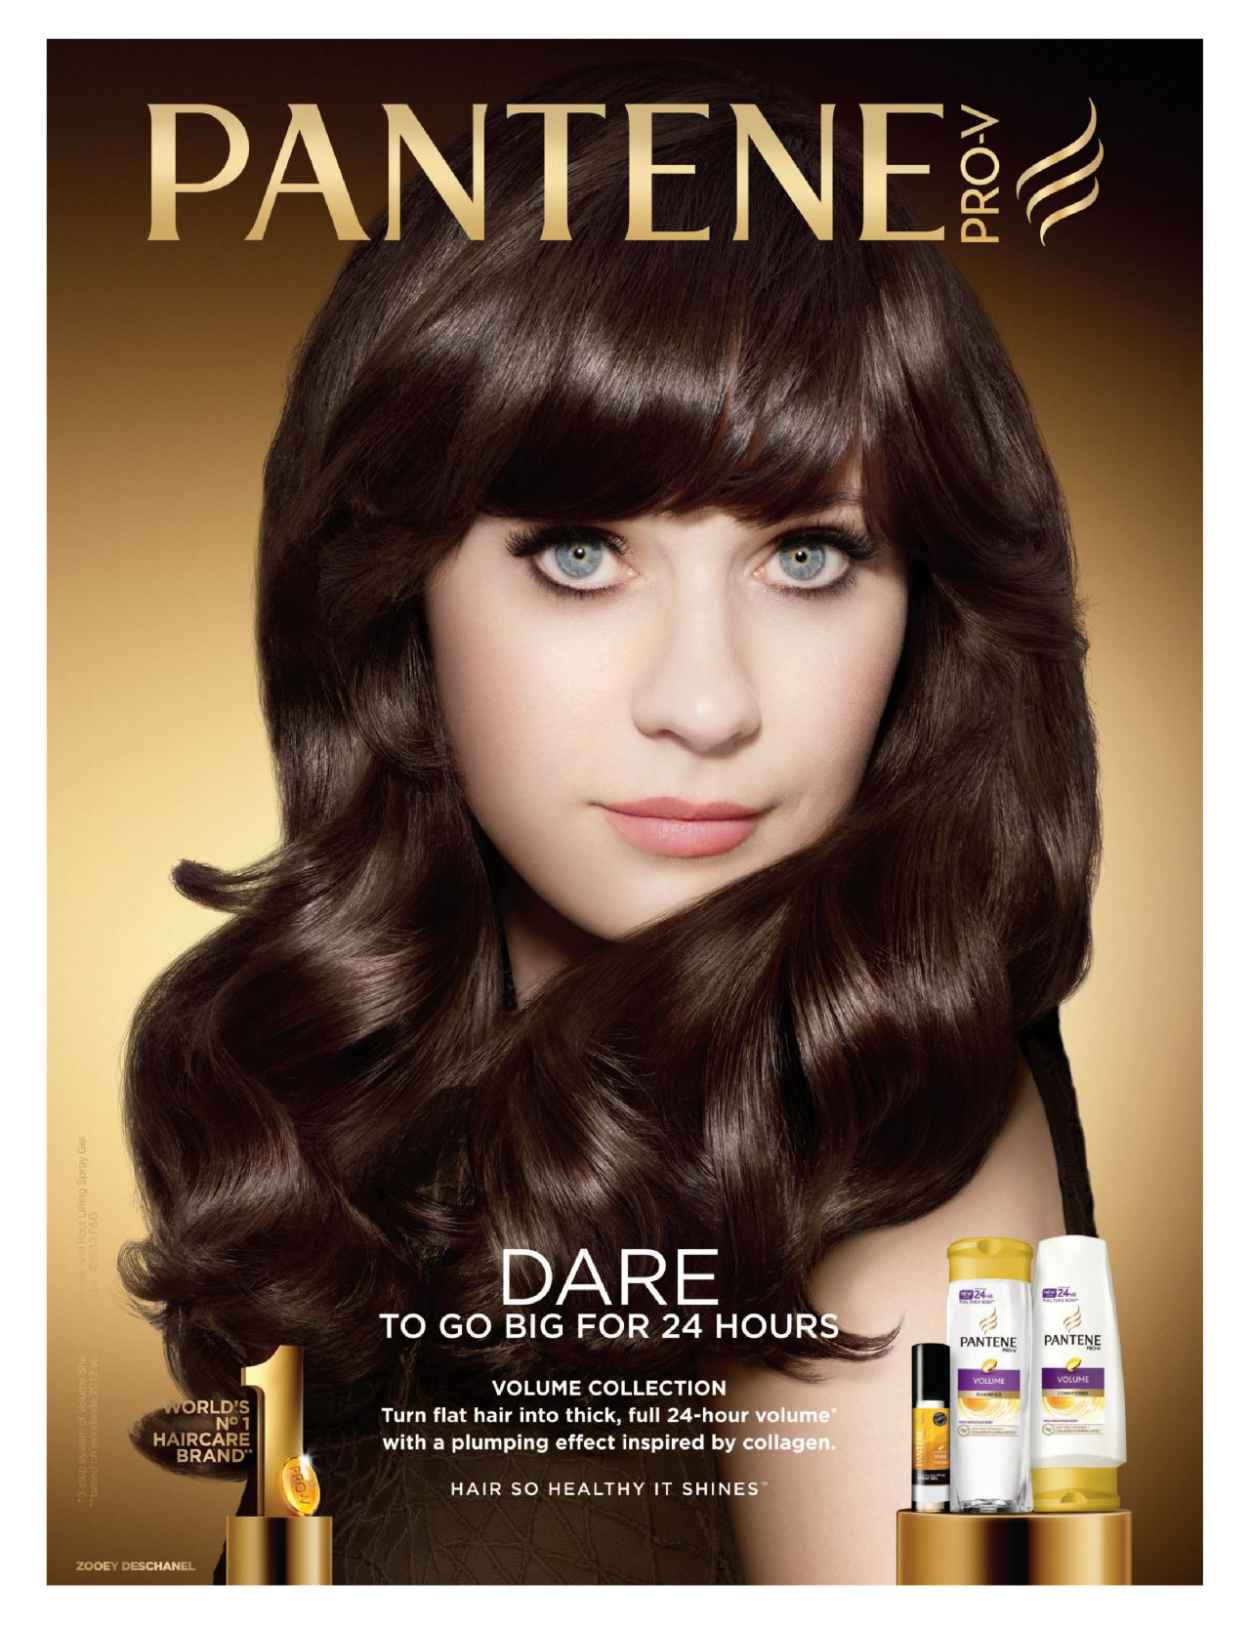 False advertising for Pantene has upset People around the World